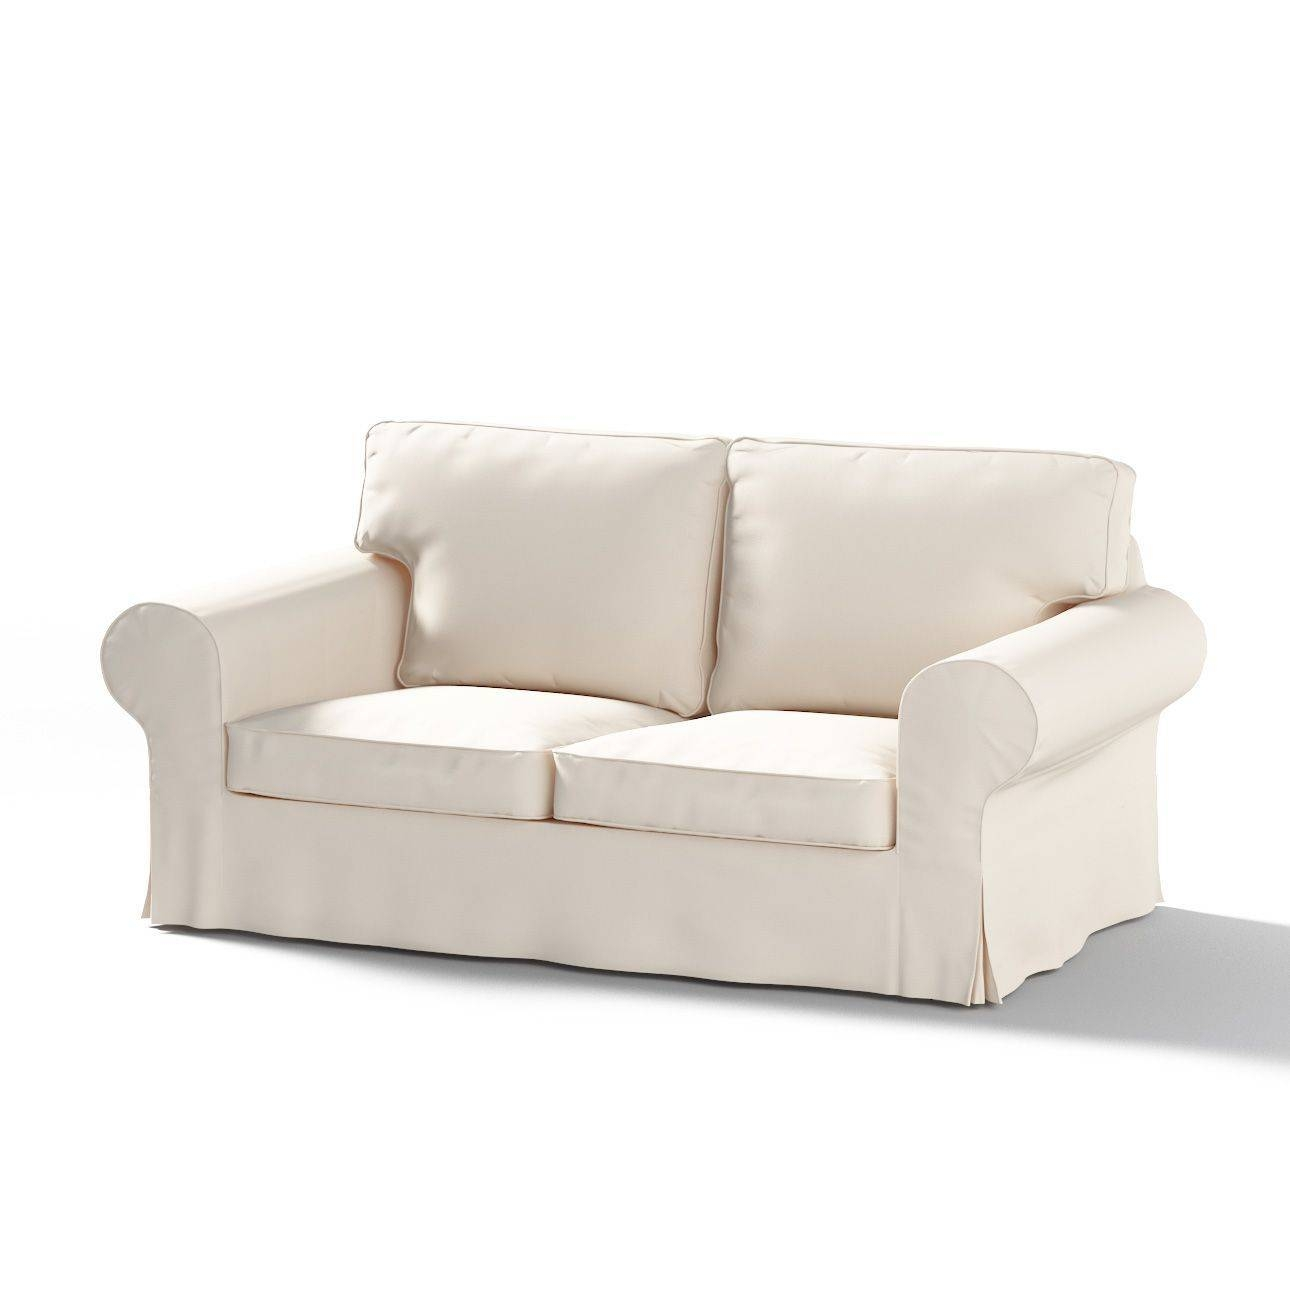 Ikea Ektorp Sofa And Furniture Covers - Dekoria.co.uk regarding Ikea Two Seater Sofas (Image 9 of 30)